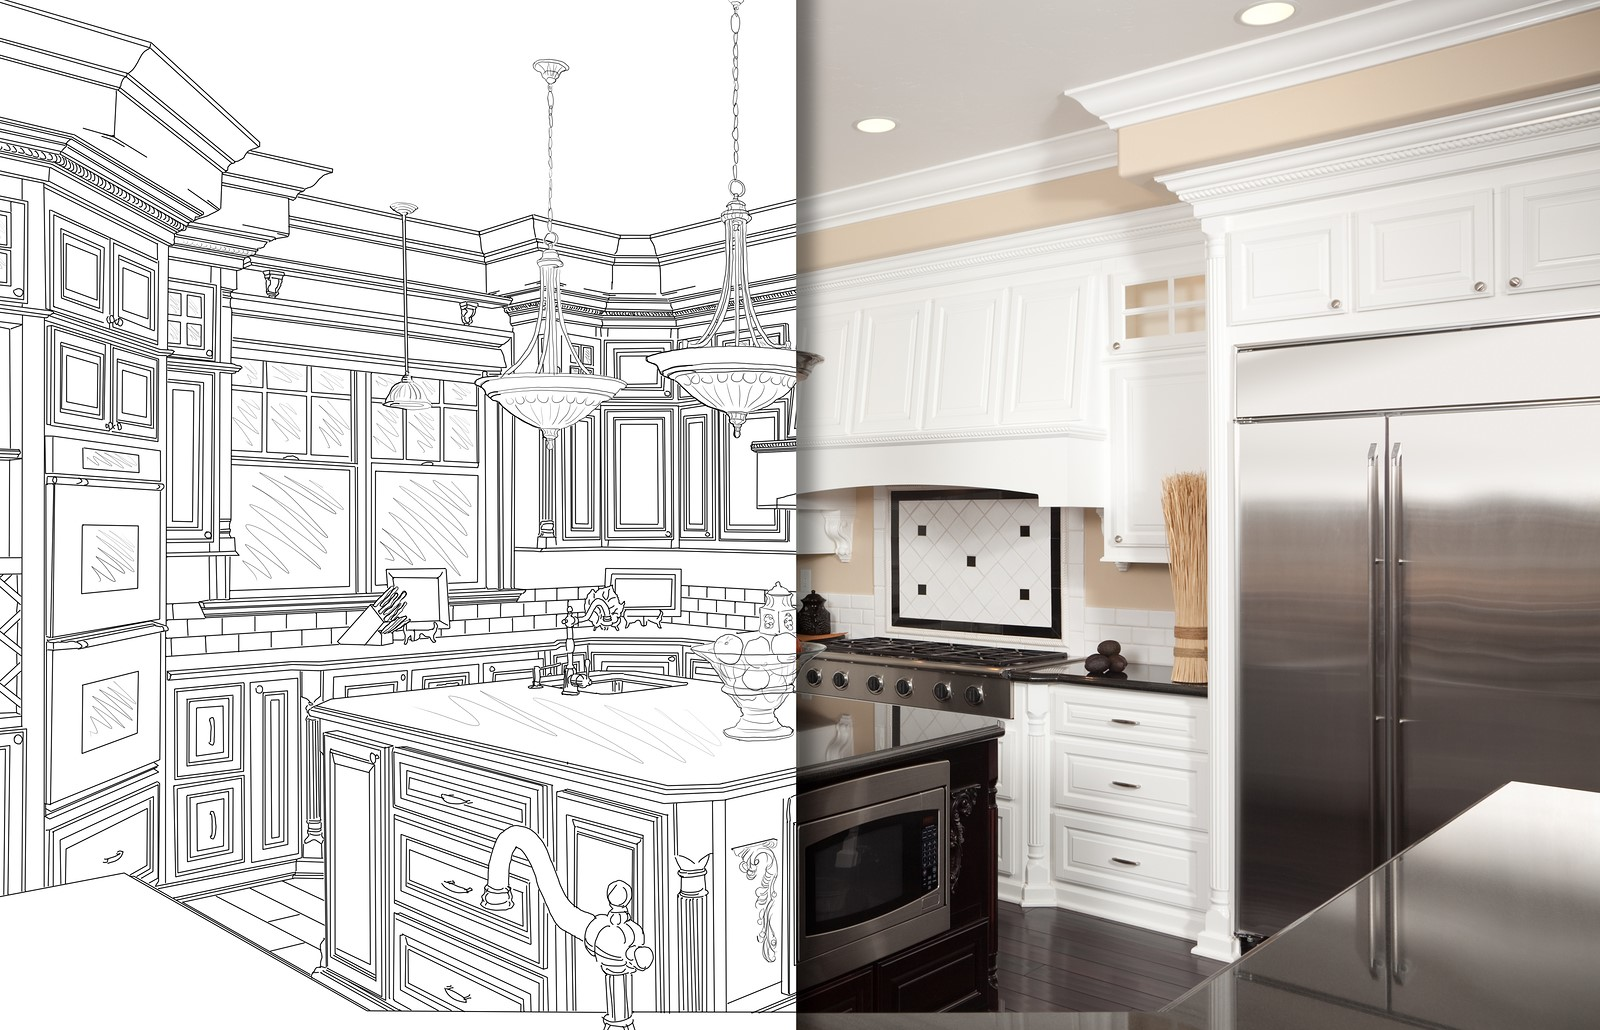 Important Considerations When Taking on a Kitchen Remodeling Project